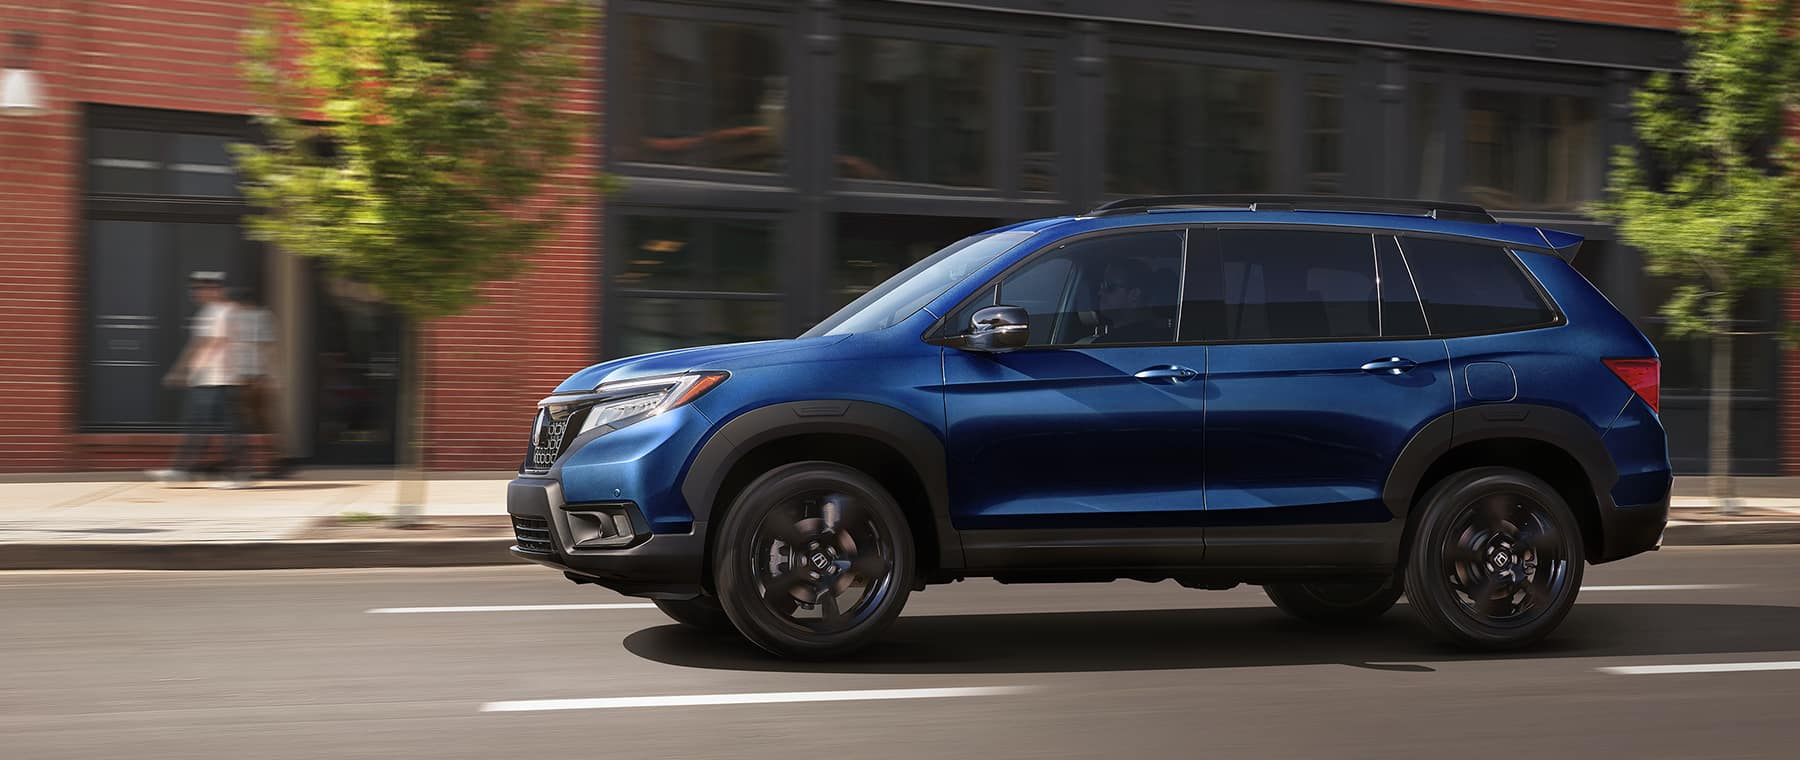 Honda Middletown Ny >> Honda Middletown Ny Top Car Release 2020